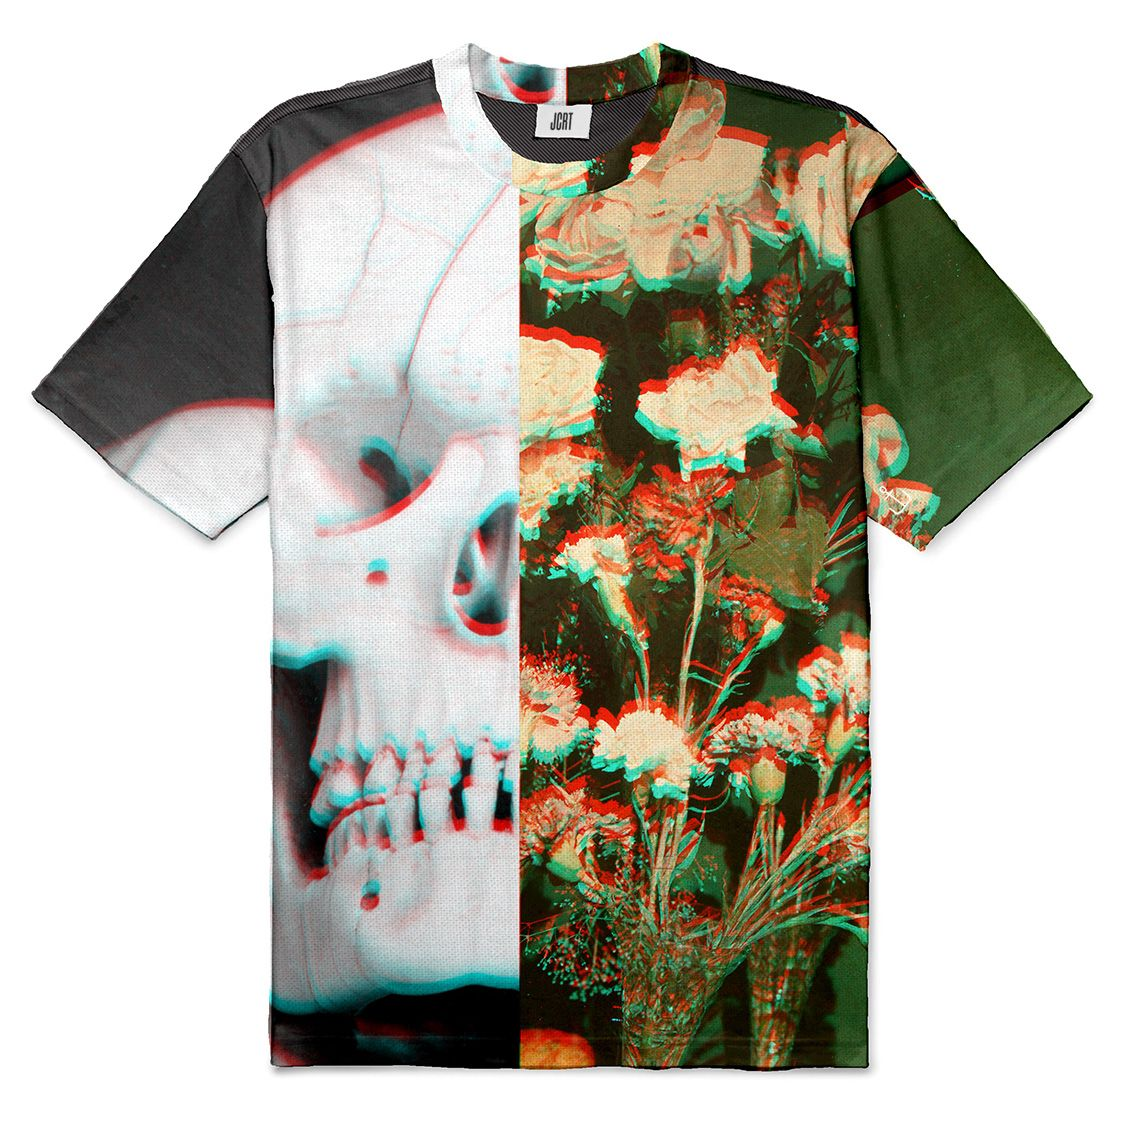 The Still Life with Flowers and Skull Collage T-Shirt